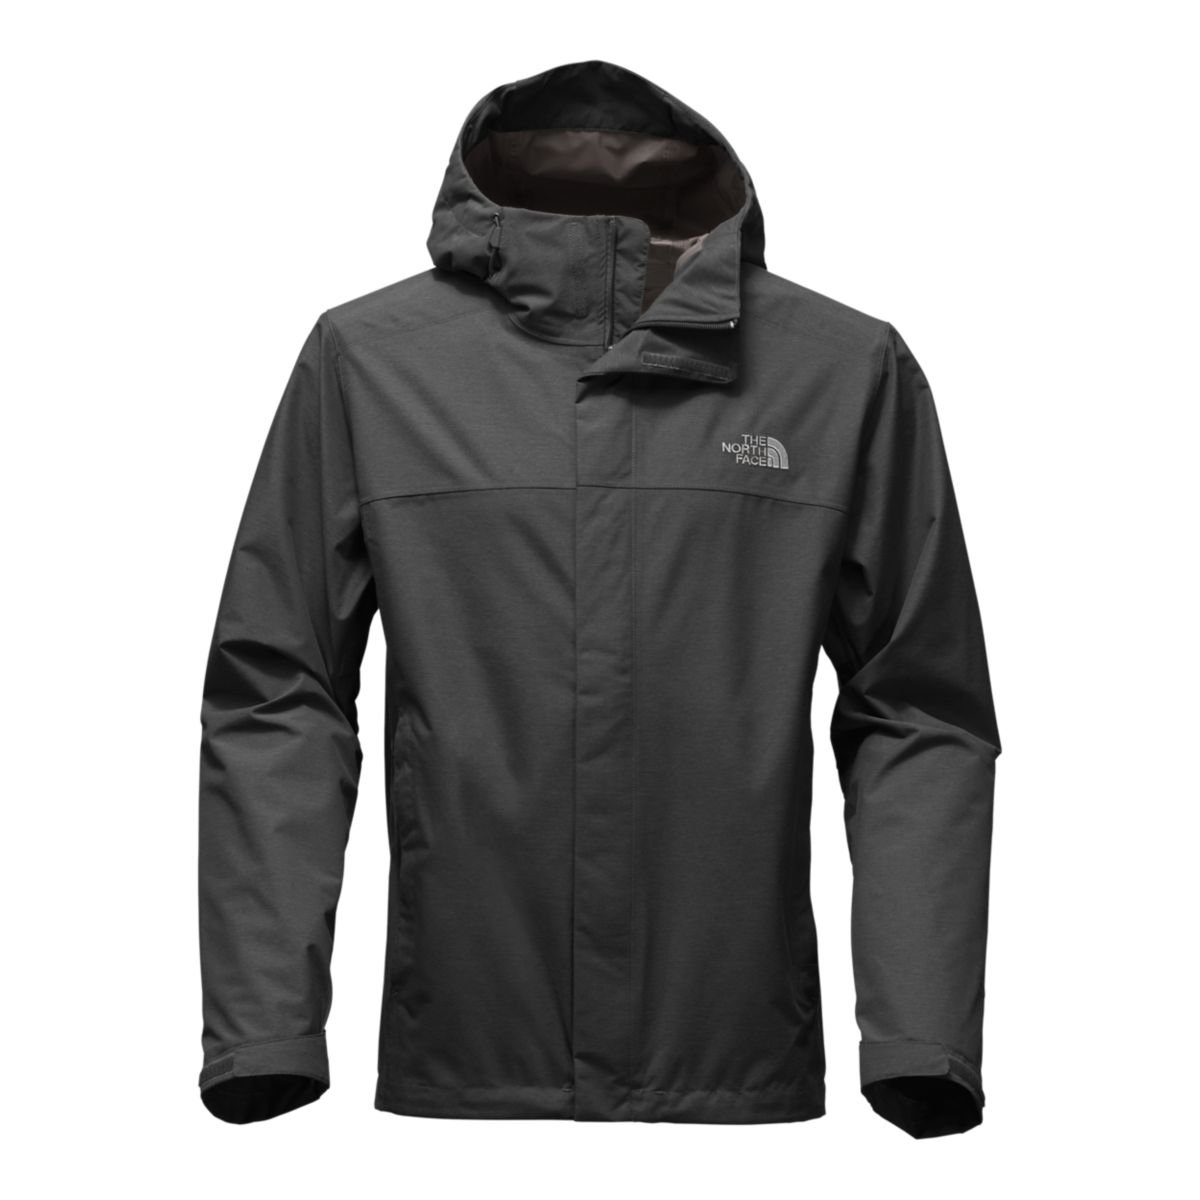 The North Face Men's Venture 2 Jacket - Tall Dark Grey Heather/Dark Grey Heather (Large)